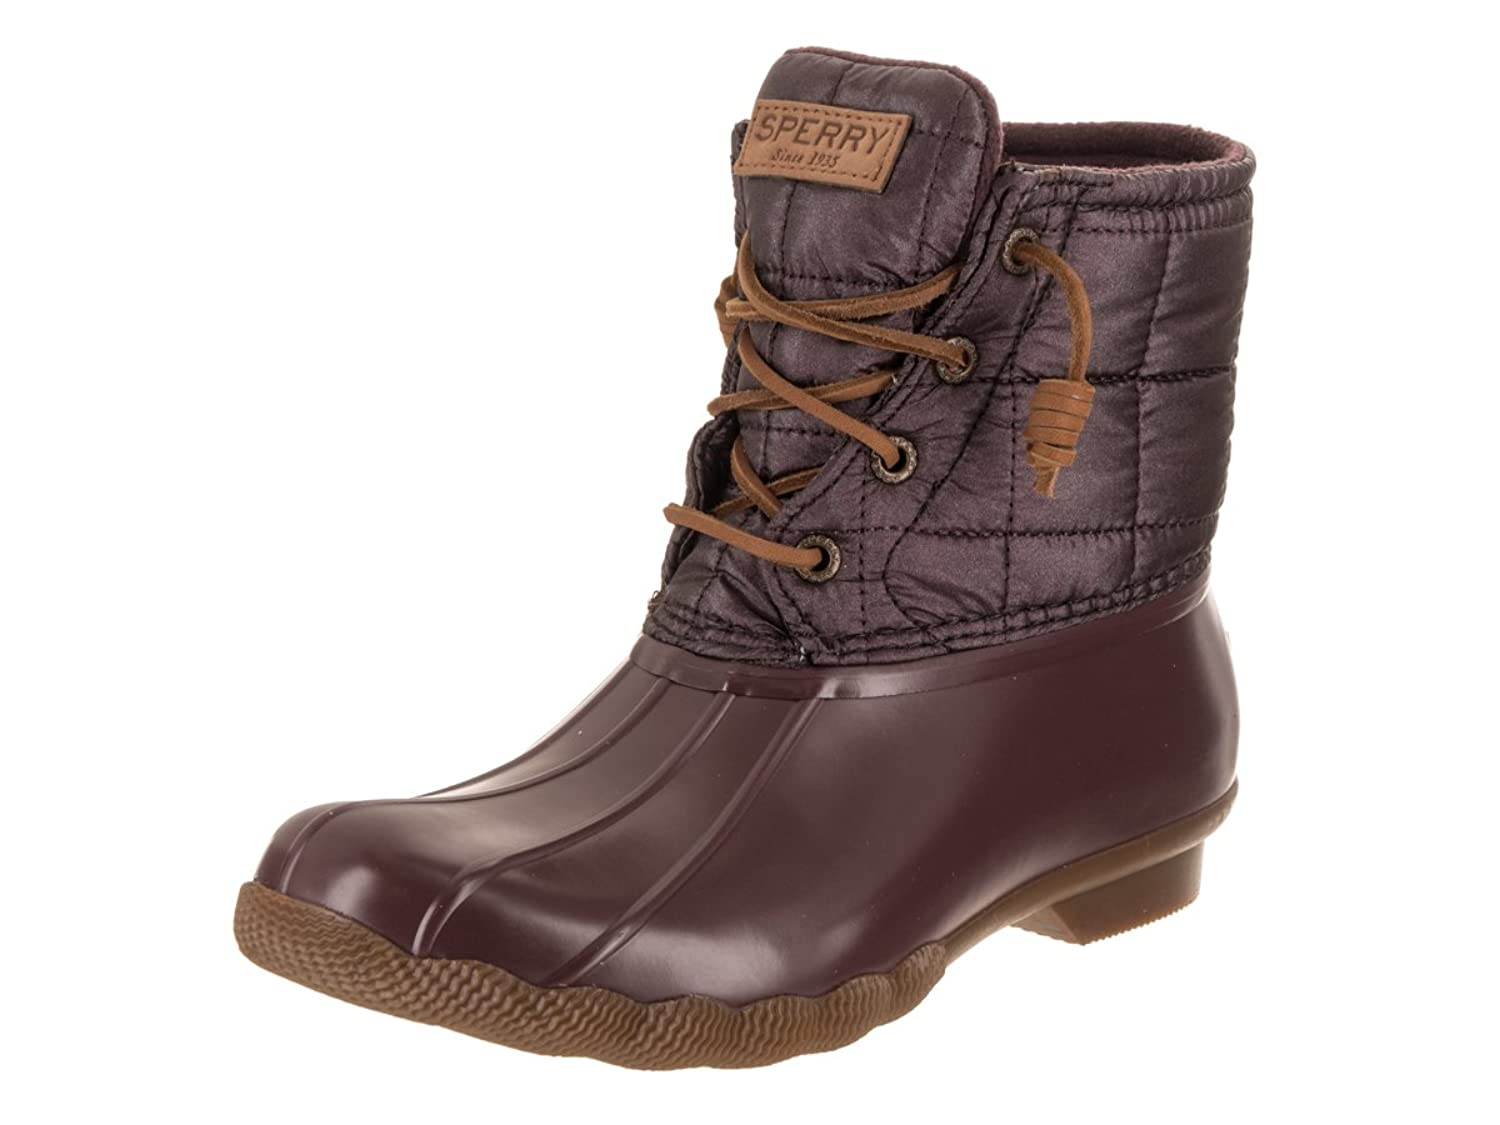 Sperry TopSider Womens Saltwater Boot  B075FRVRPV